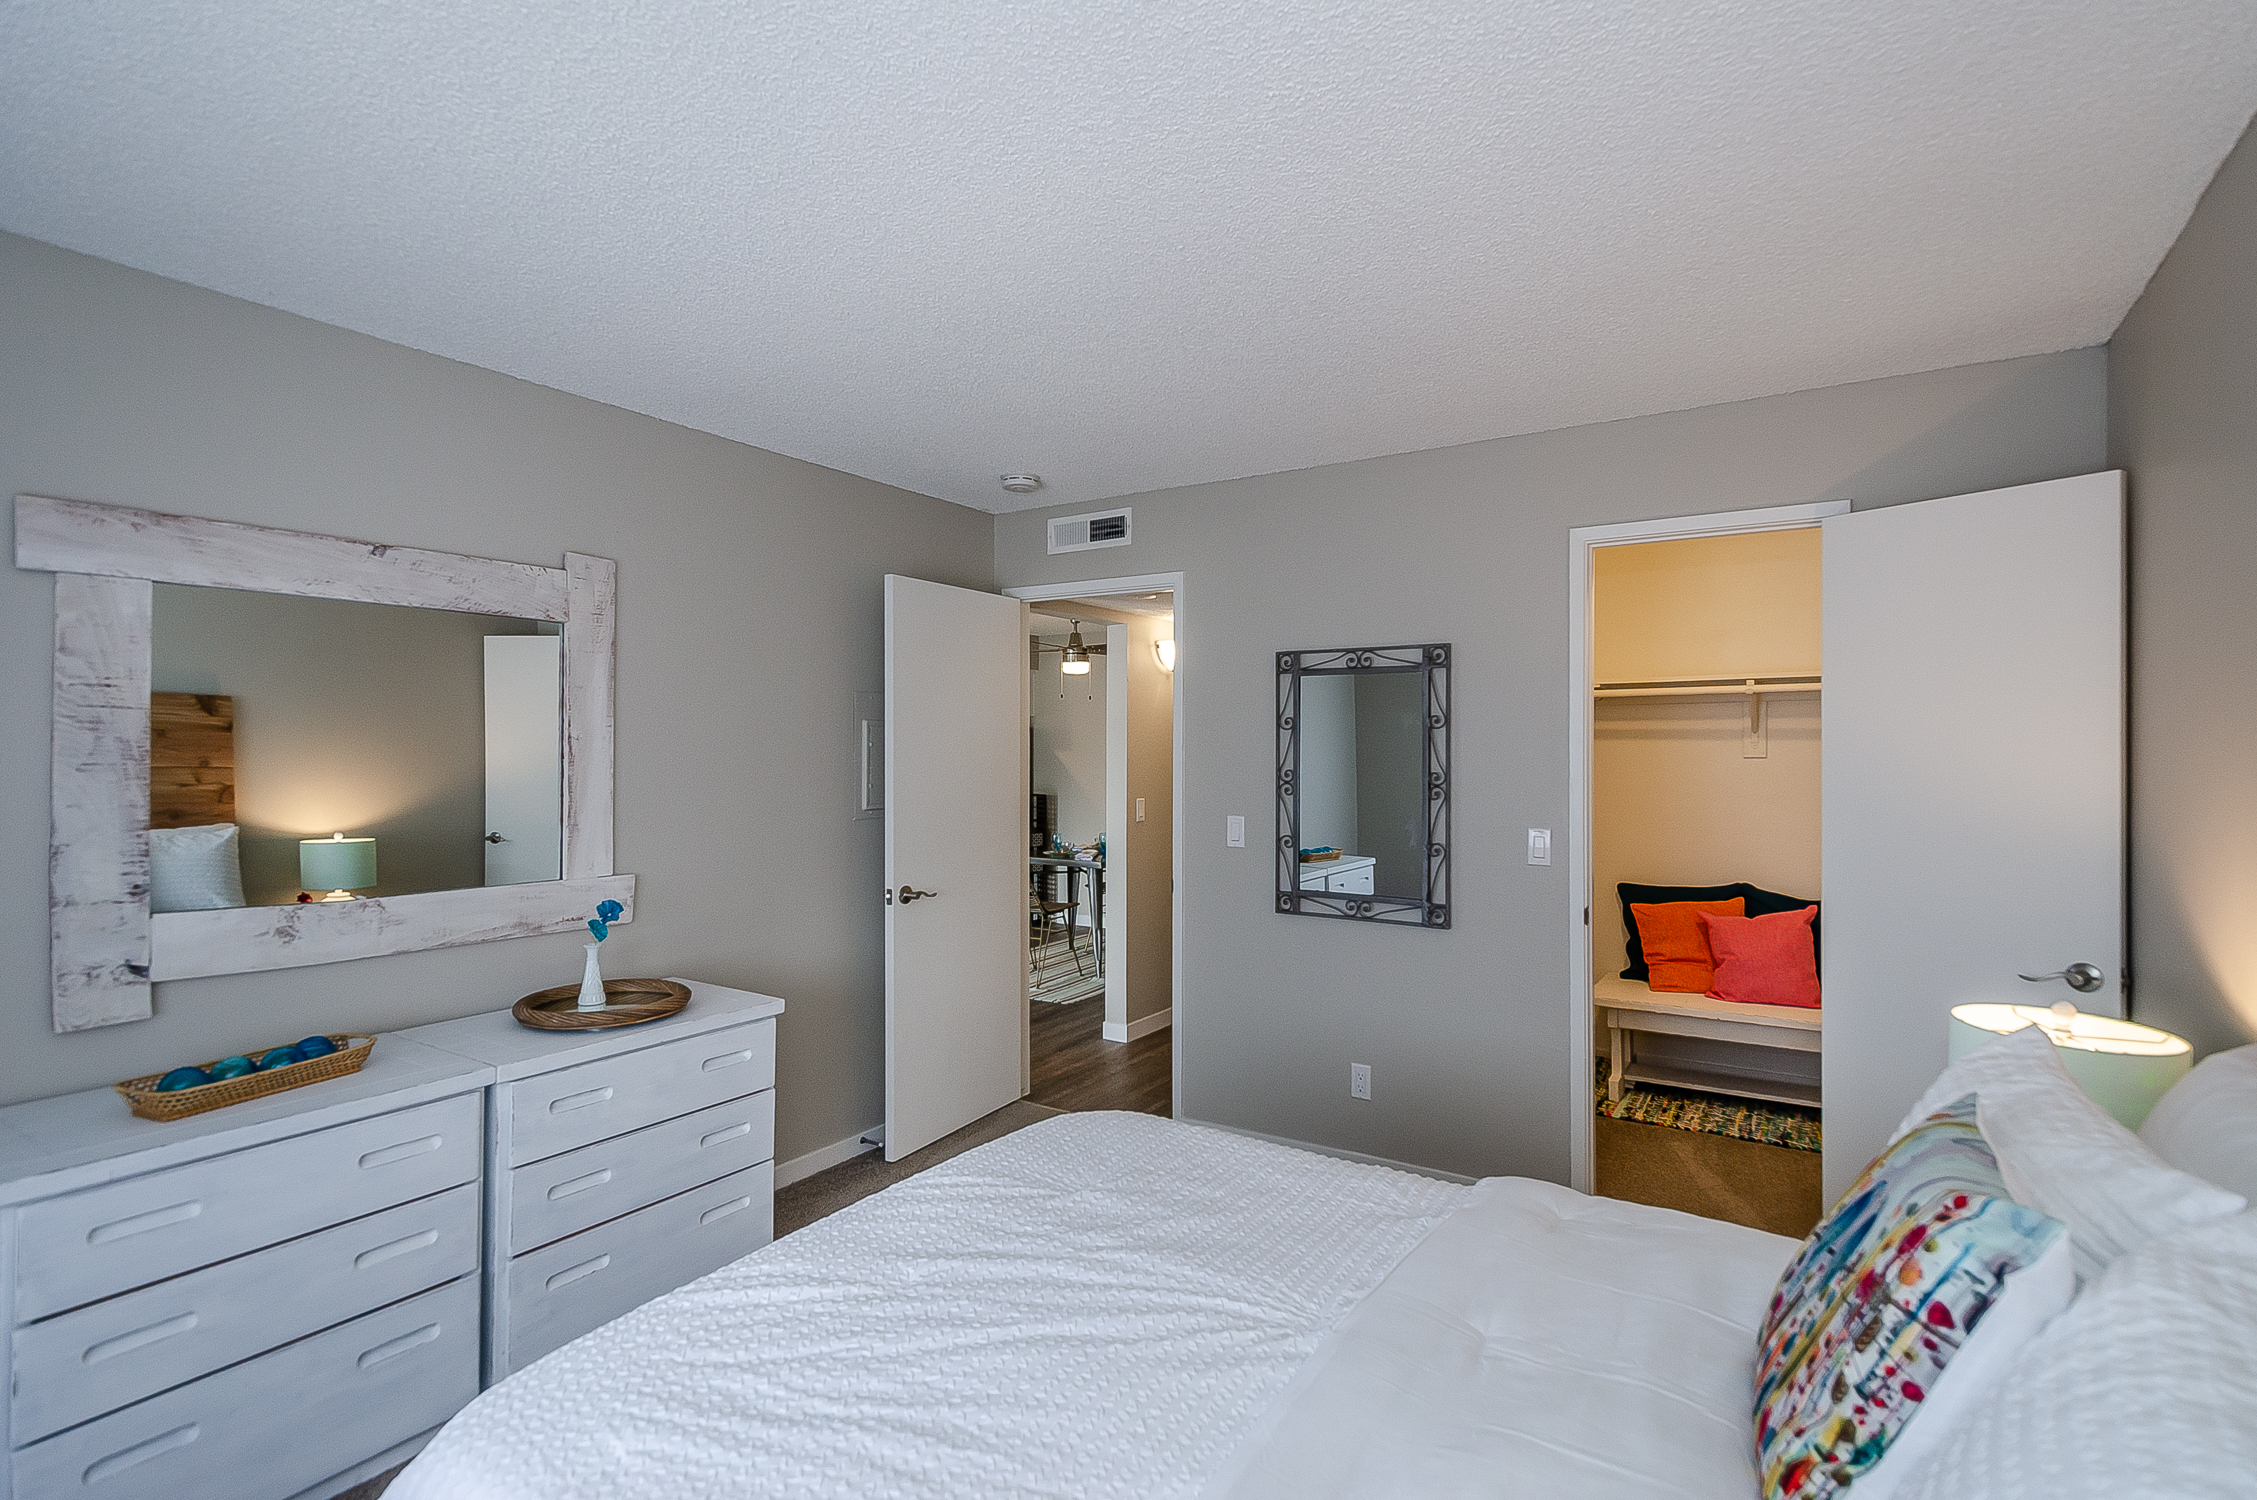 bedroom shows a deep closet, carpet flooring, and view into the hallway that has wood flooring